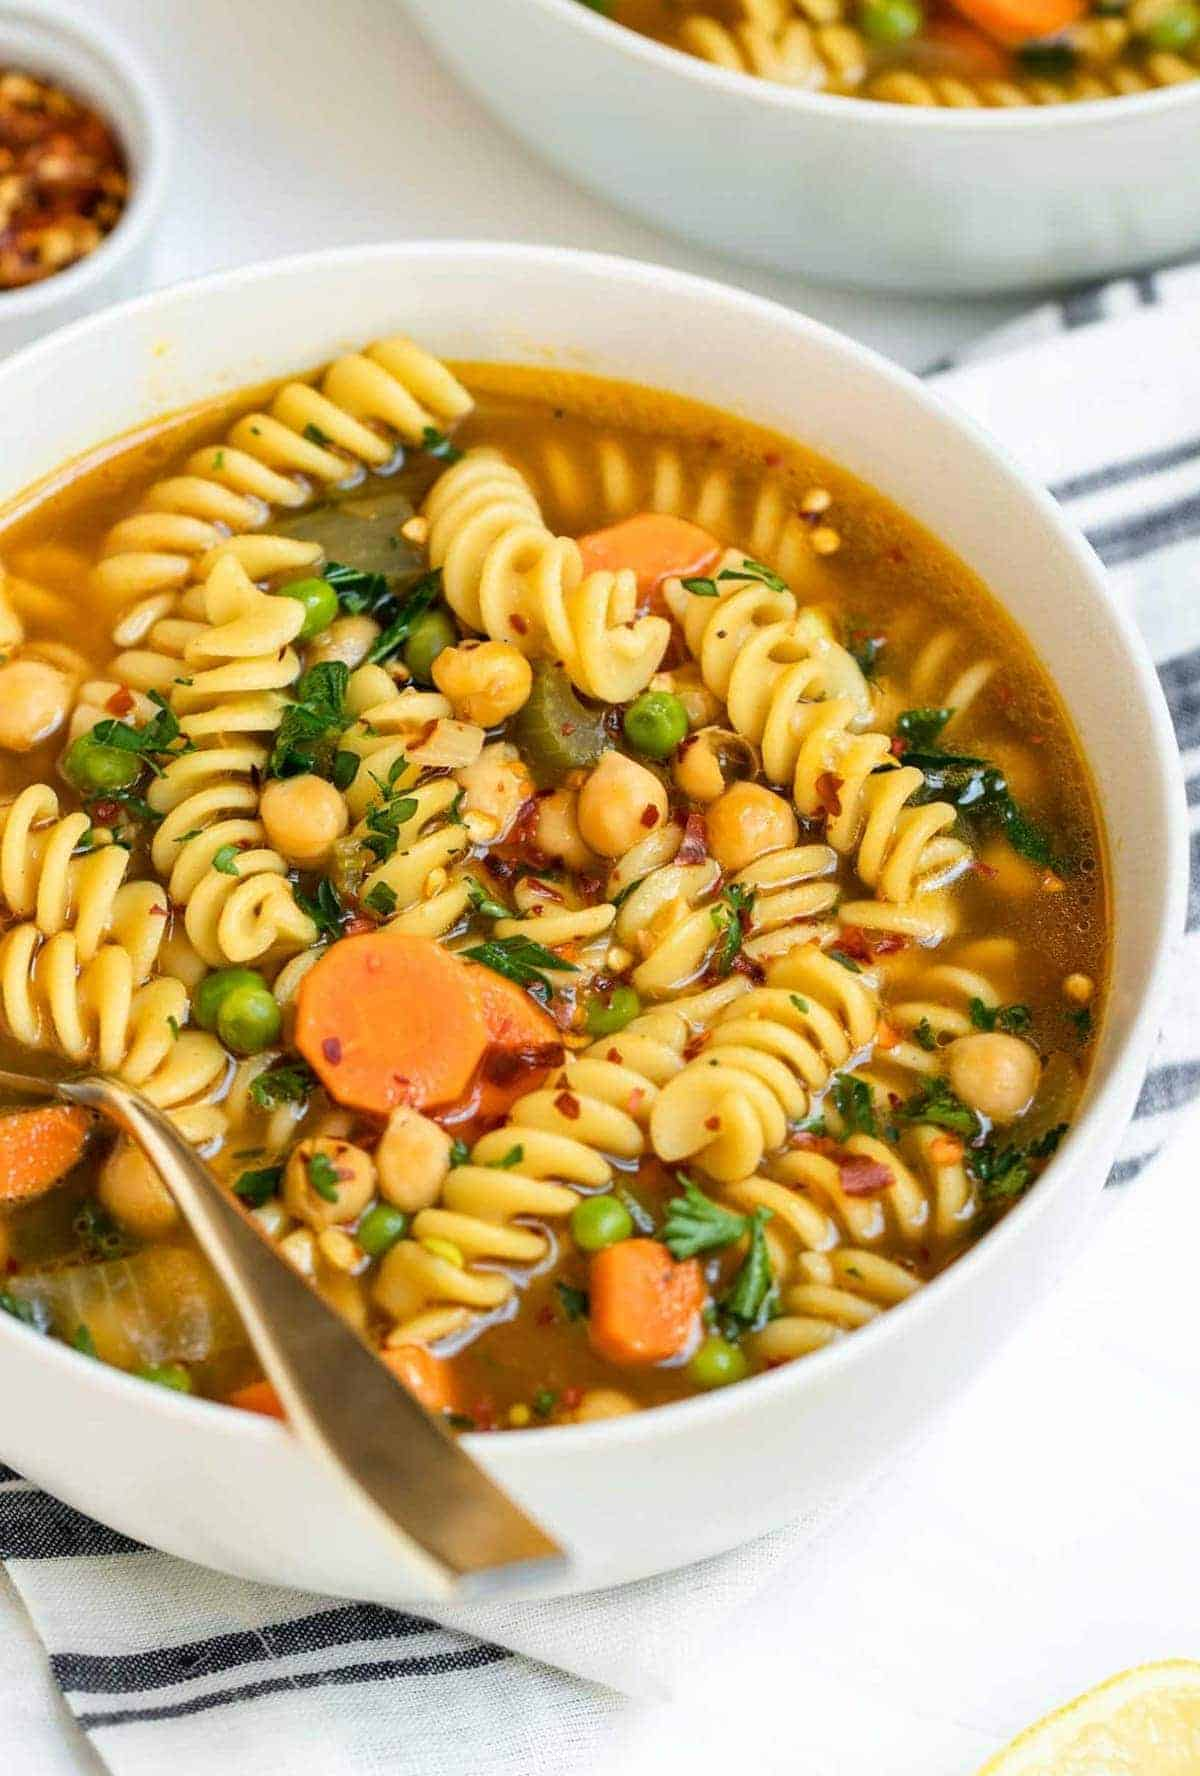 up close of the chickpea noodle soup with a spoon on the side